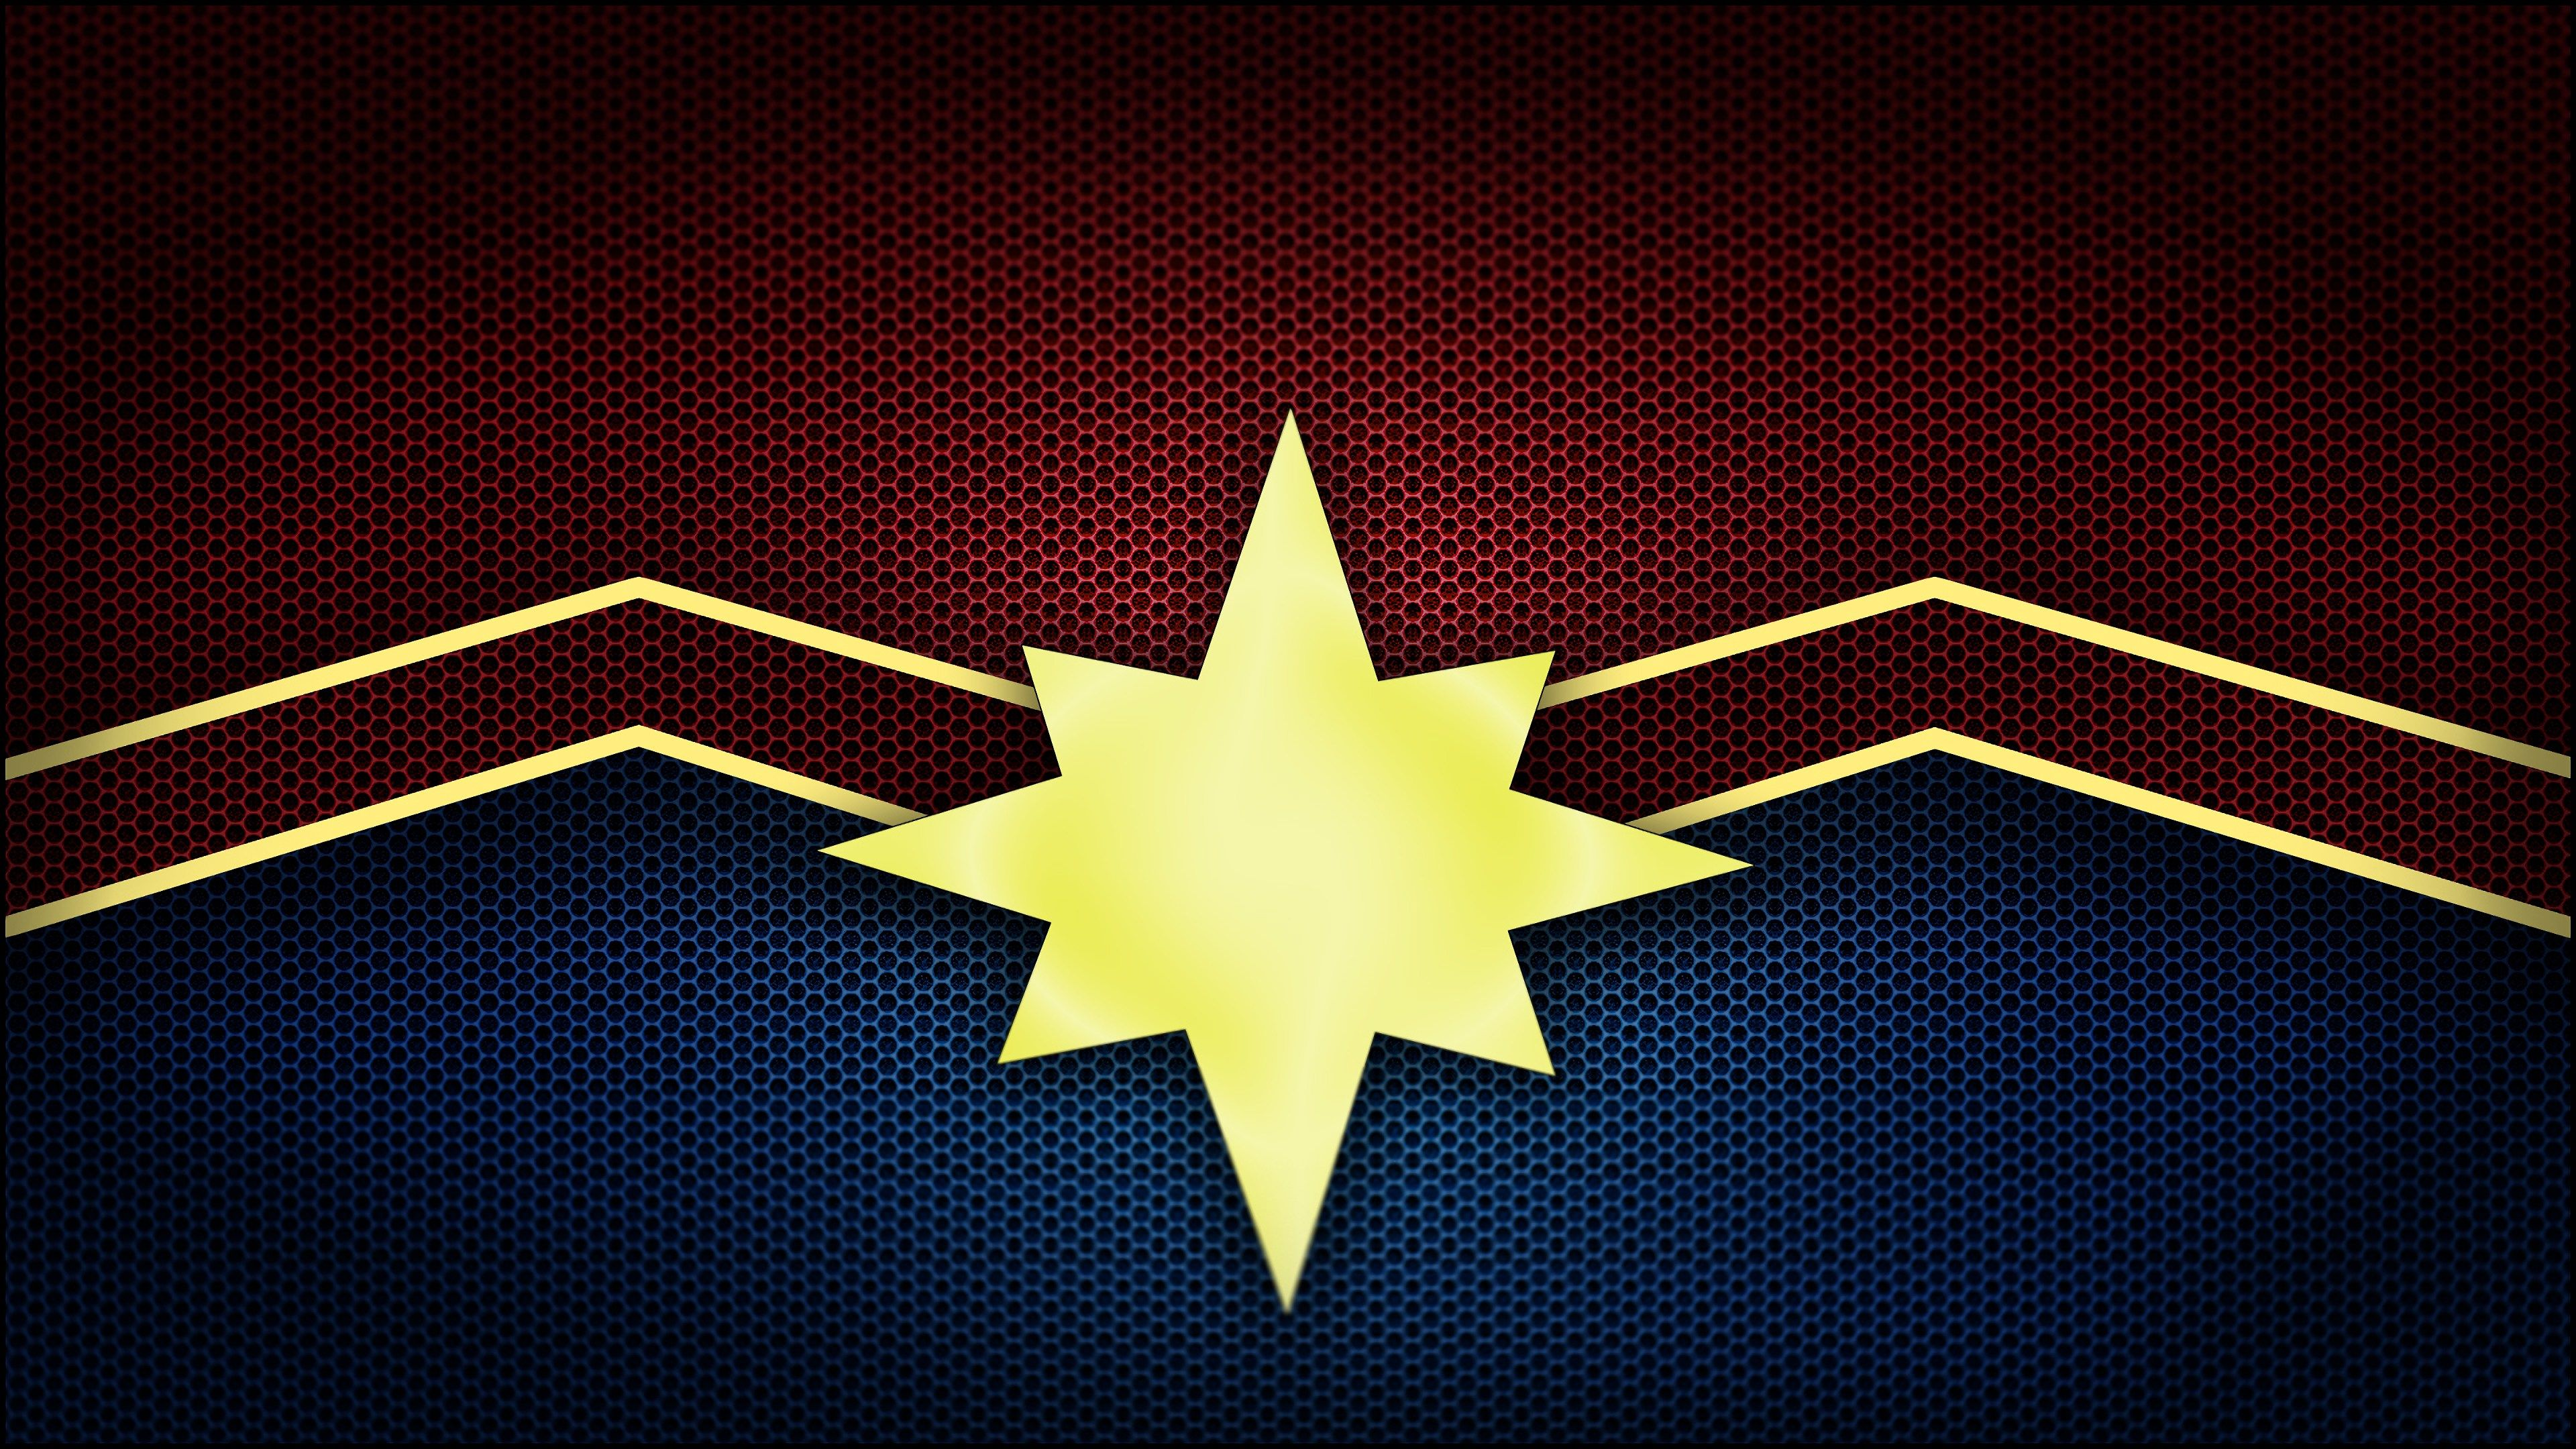 Captain Marvel Movie 2019 Logo 4k Wallpaper Captain Marvel Movie 2019 Captain Marvel Carol Danvers Captain Marvel Marvel Wallpaper Marvel Logo